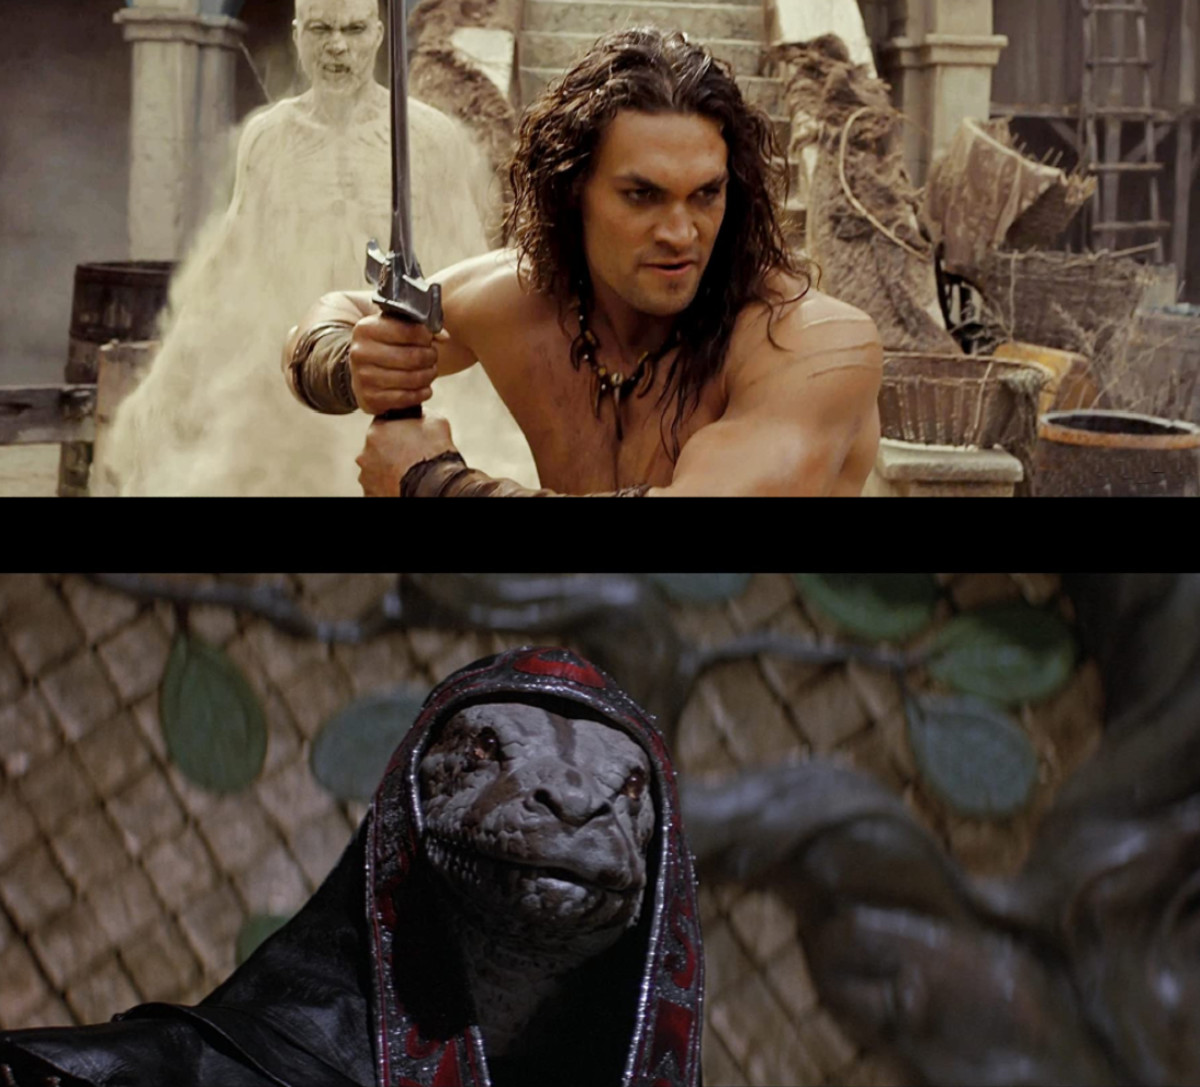 1982 had James Earl Jones transform into a snake man. 2011 gave us sand men... I wonder which one had the better imagination.